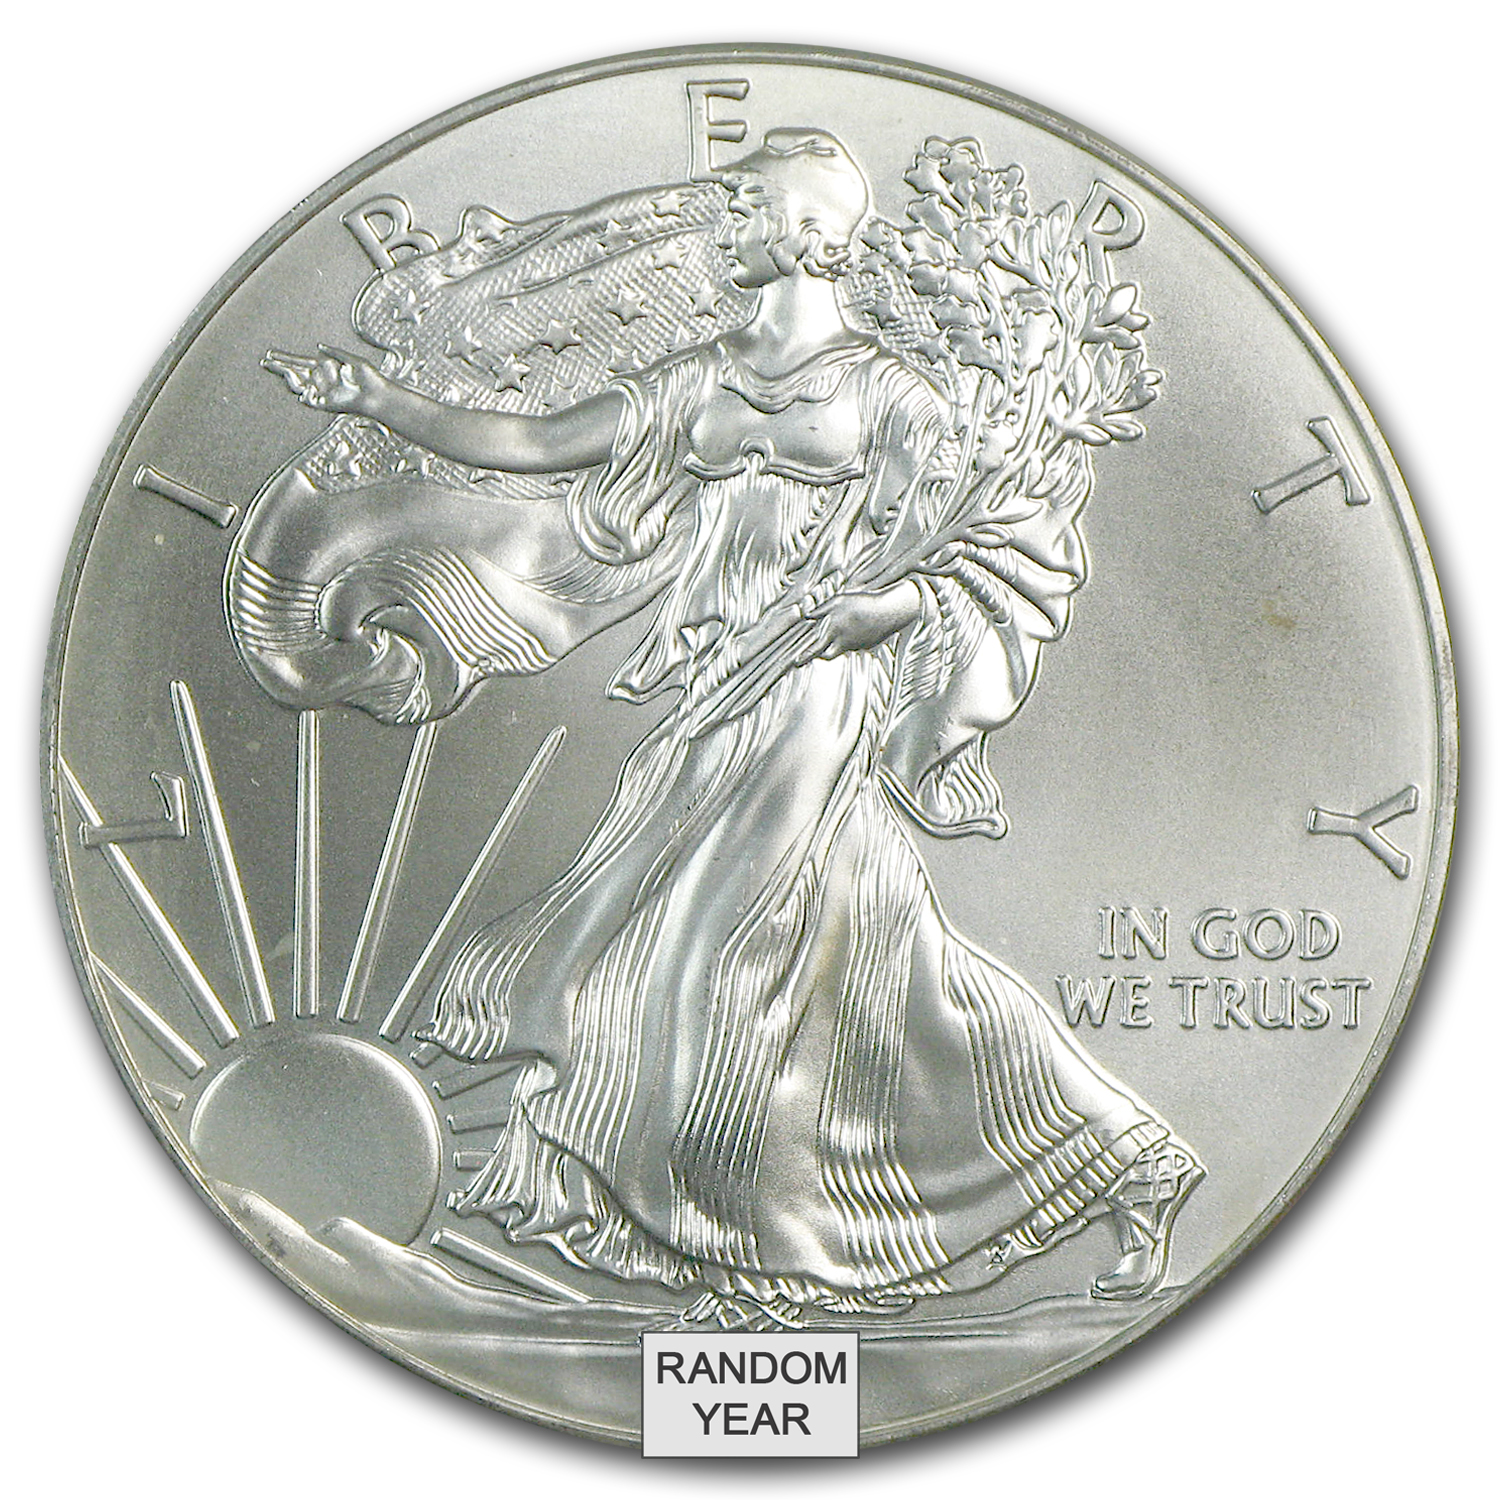 1 oz Silver American Eagle (Cull, Damaged, etc.)